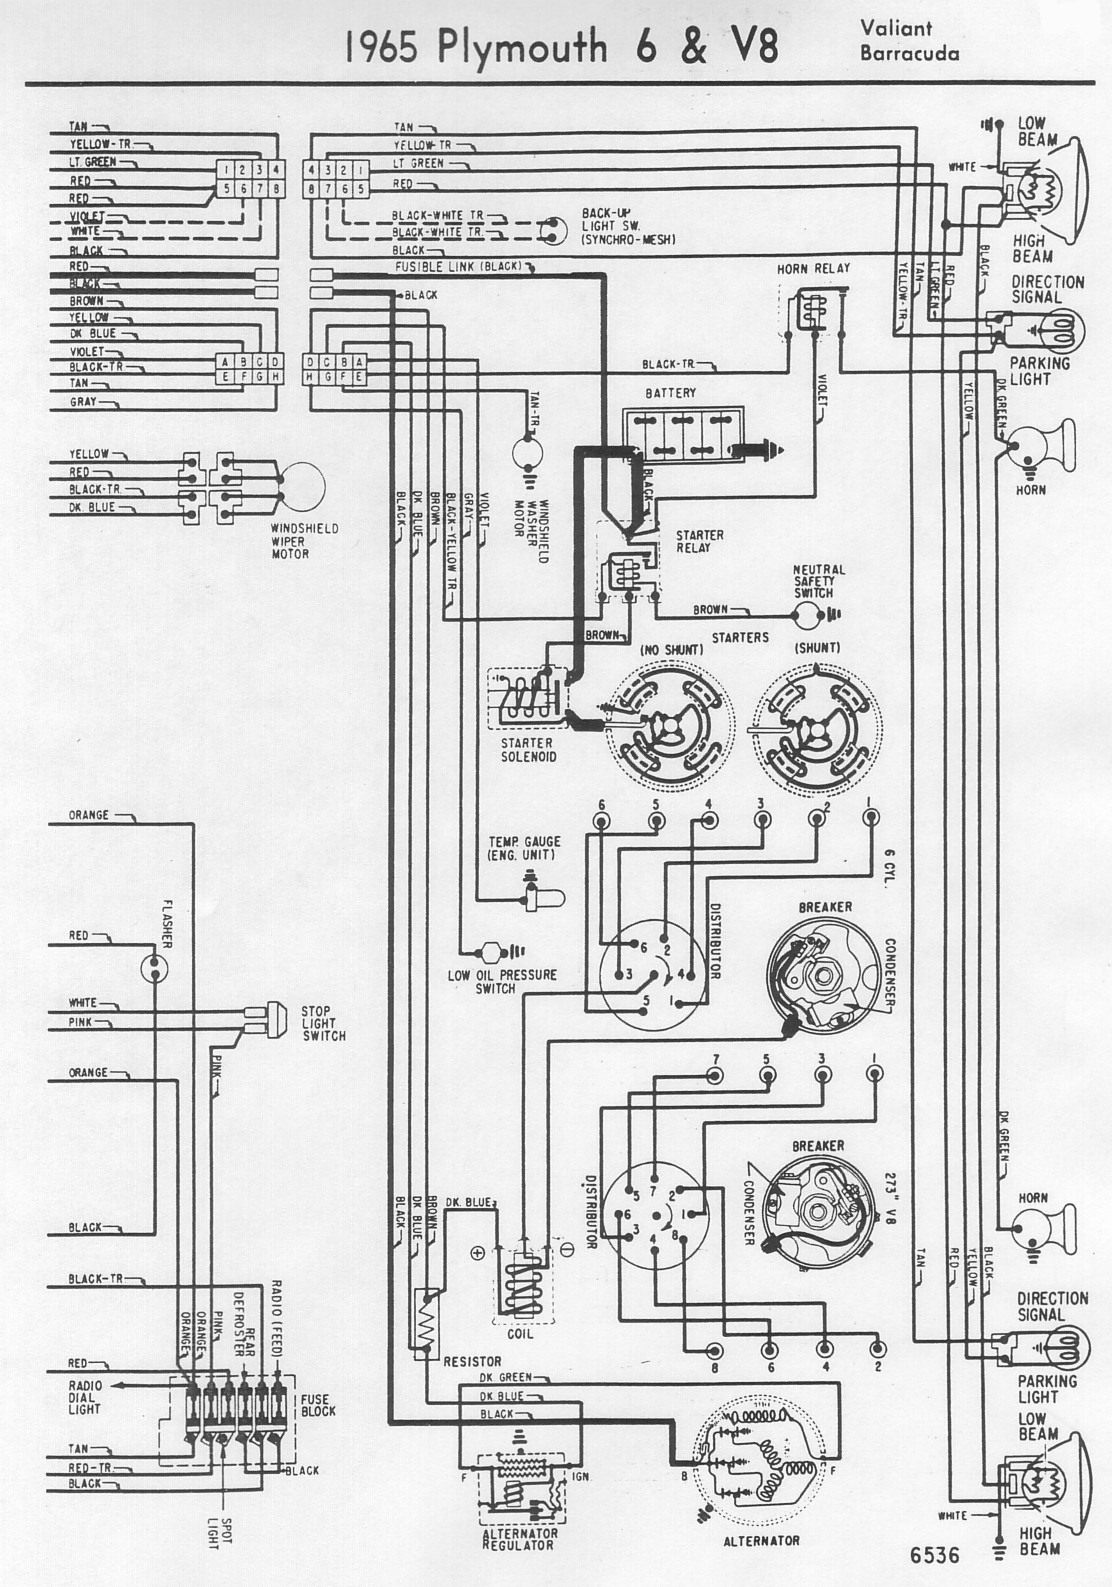 1968 Plymouth Fury Wiring Diagram Star Delta Control Wiring Diagram Bege Wiring Diagram